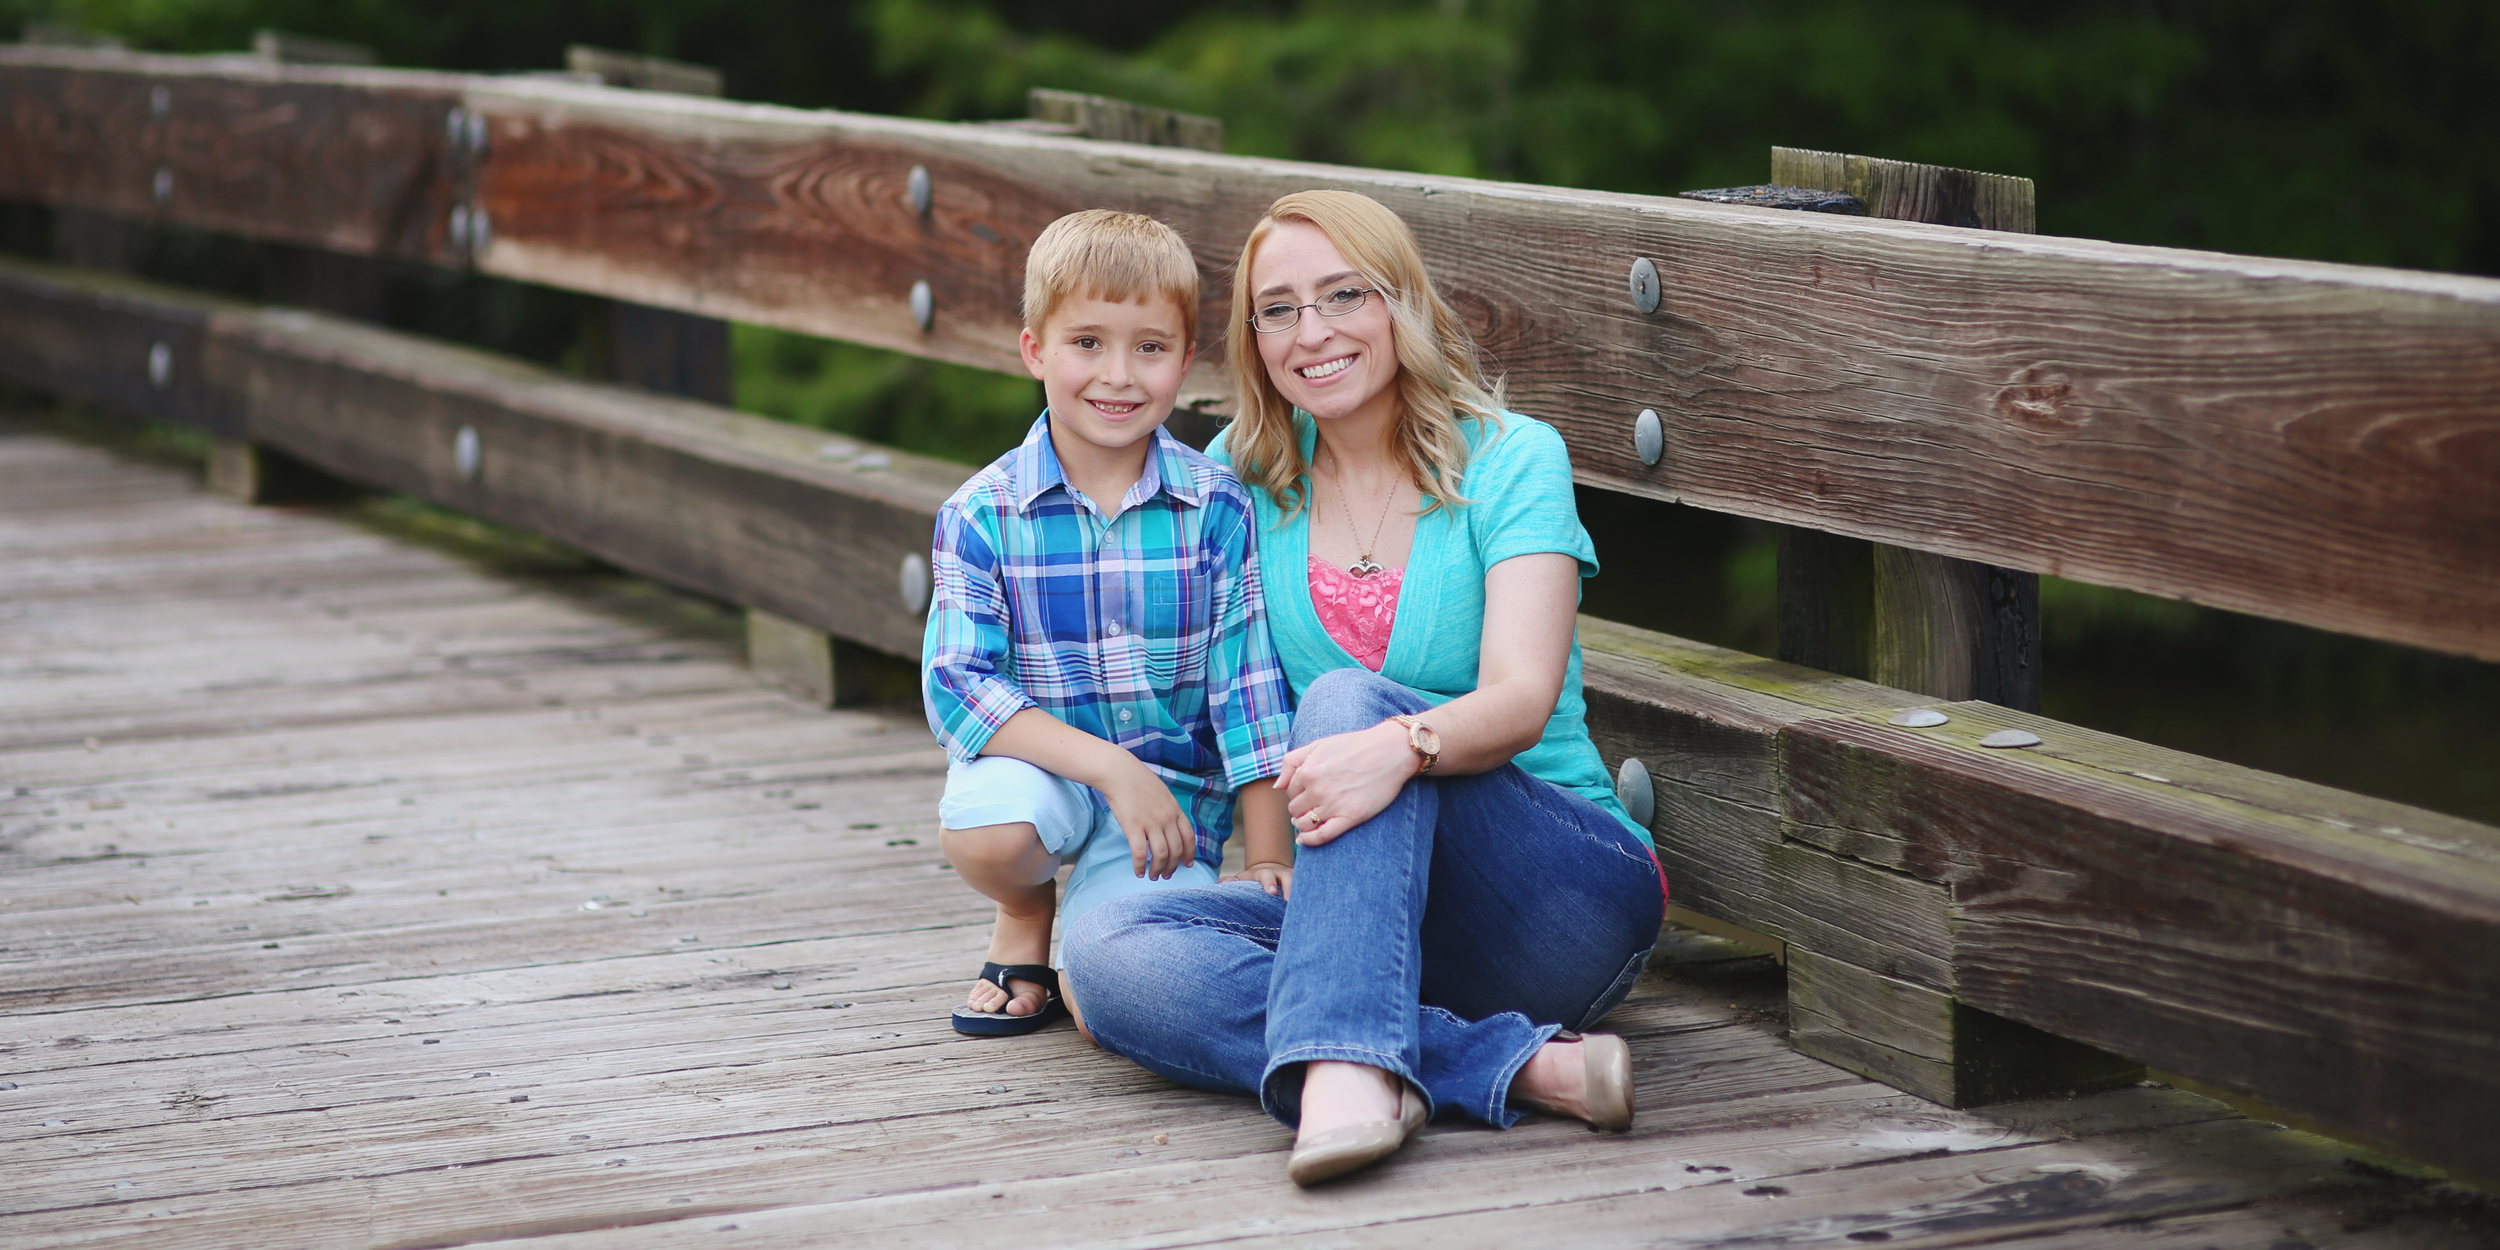 Shana said... - AMAZING job on our family pictures! (I cannot thank you enough Emily.) I love them!!!! Hands down best experience I've ever had with getting pictures taken and with the results. Very professional and great location. Definitely recommend and will be a repeat client.